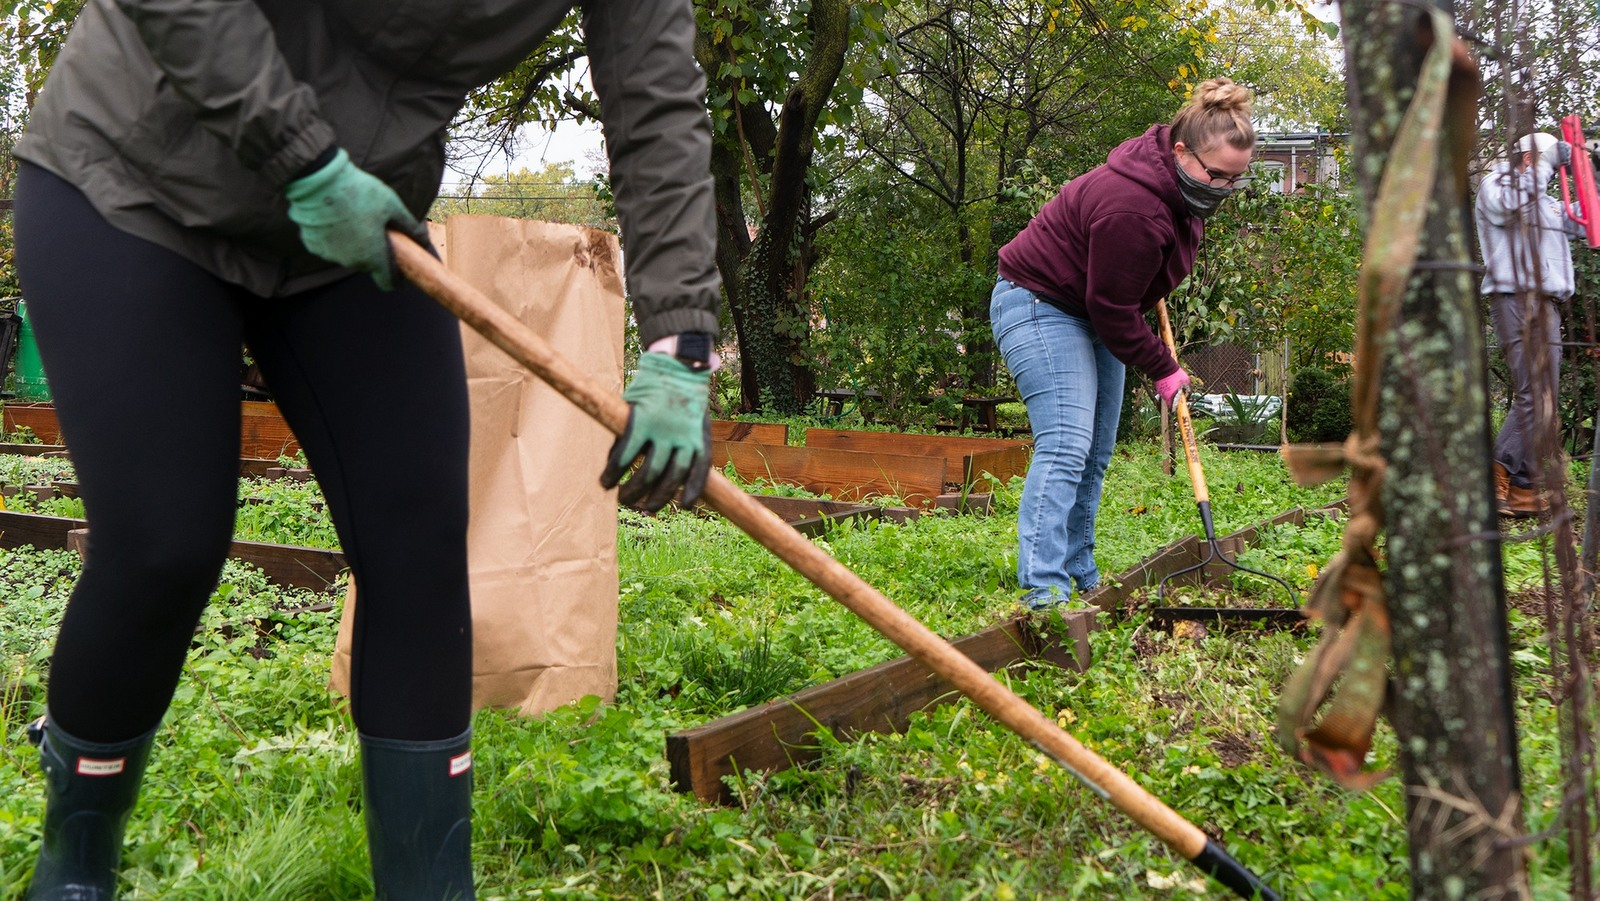 Volunteers clear out weed-choked beds at East Baltimore's Duncan Street Miracle Garden. (Photo credit: Ellin & Sharpe)